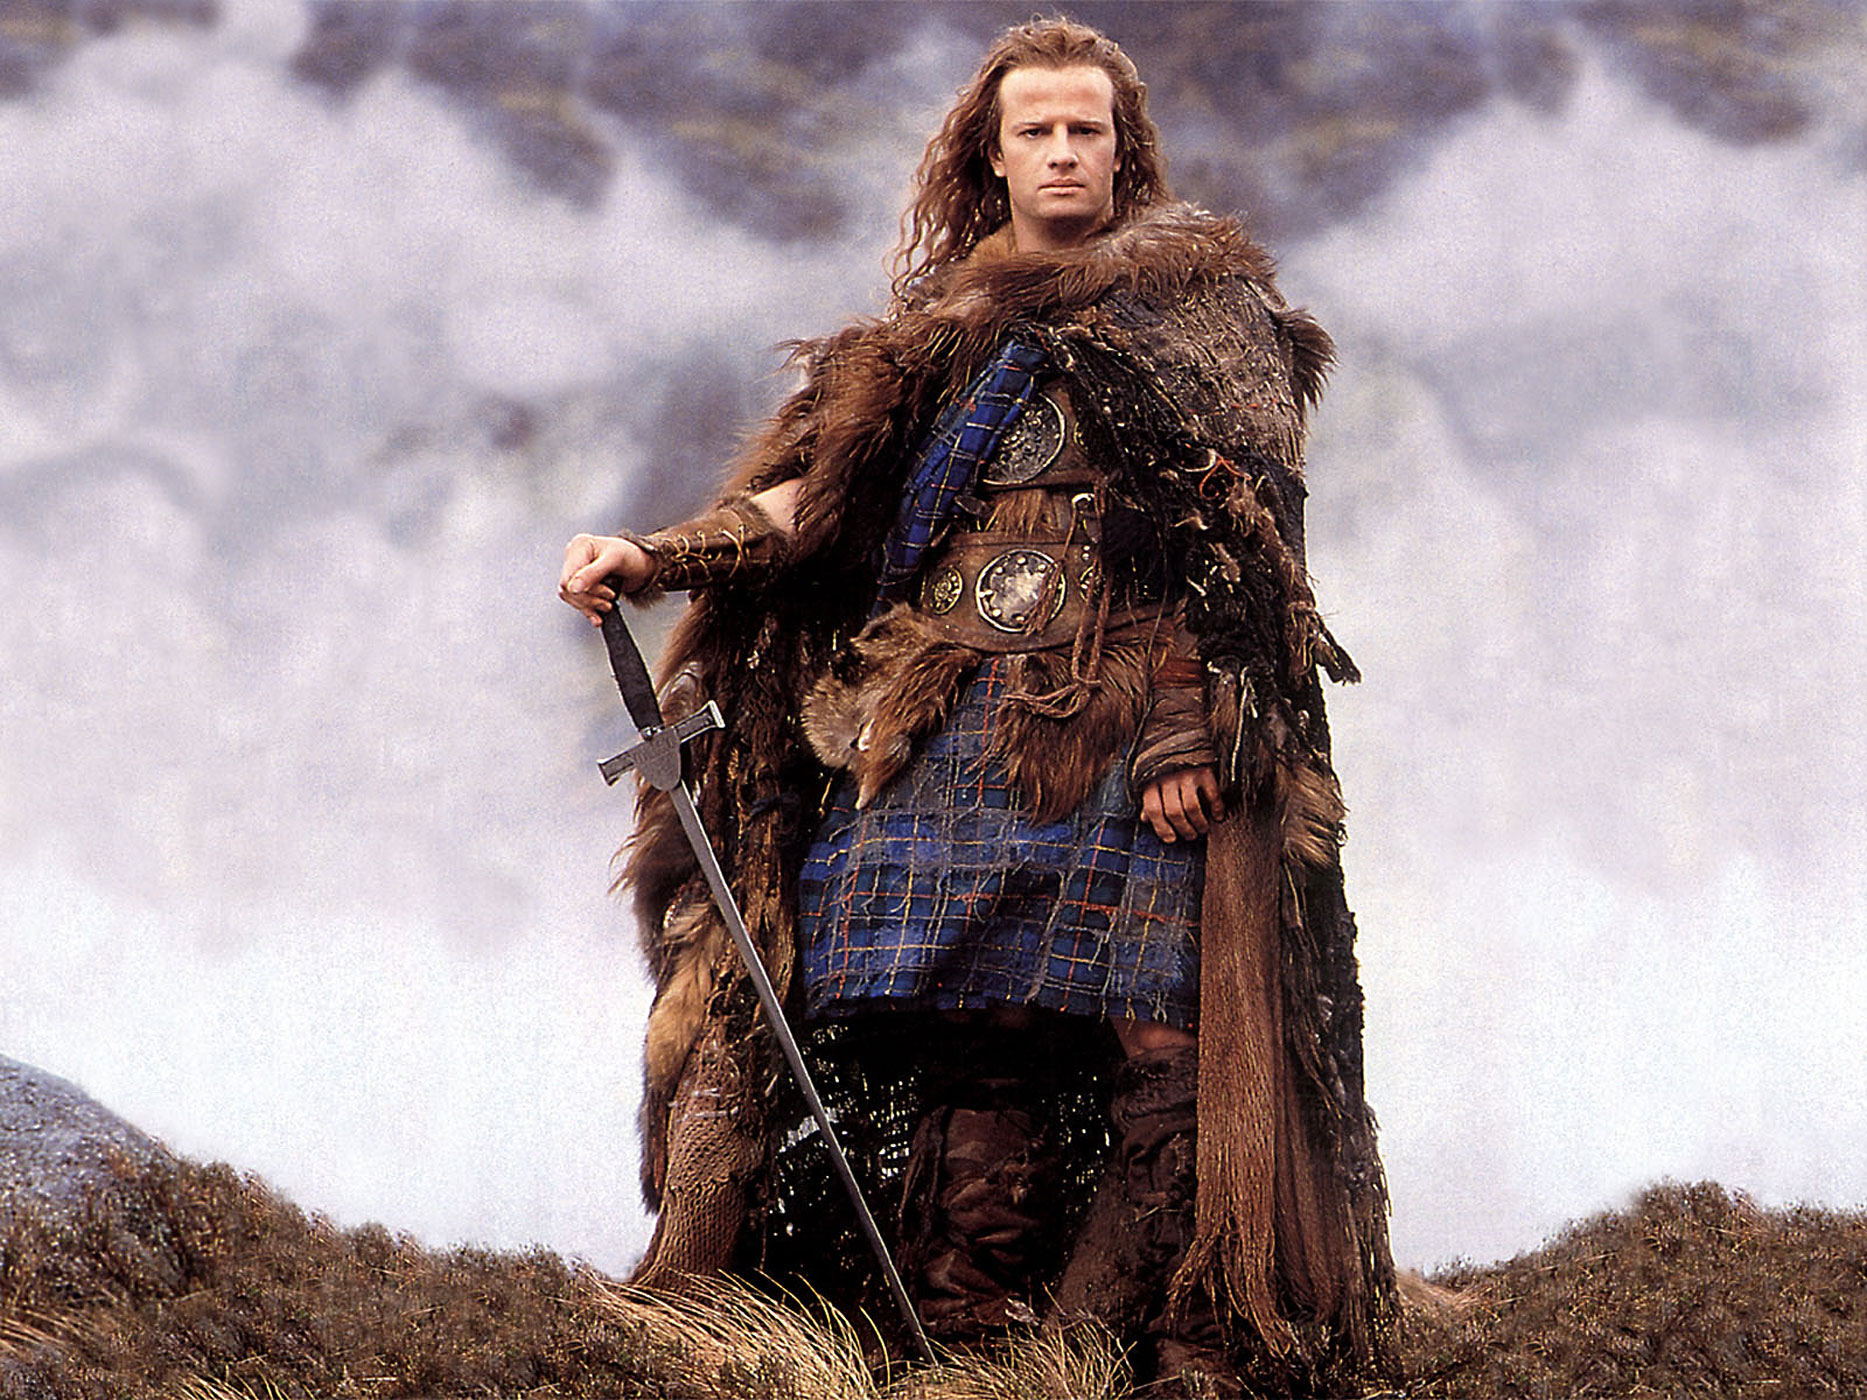 "Highlander, 1986. ""There can be only one."" Shuttling between the 16th-century Scotland and 20th-century New York City, this cult fantasy imagines a meeting of warrior ""immortals."" To defeat the evil Kurgan (Ohio's Clancy Brown), the heroic Scotsman Connor MacLeod (Christopher Lambert, an American raised in French-speaking Geneva) must imbibe the wisdom of his mentor Juan Sànchez Villa-Lobos Ramirez (played by — Sean Connery!) Directed by music-video king Russell Mulcahy, with songs by Queen."